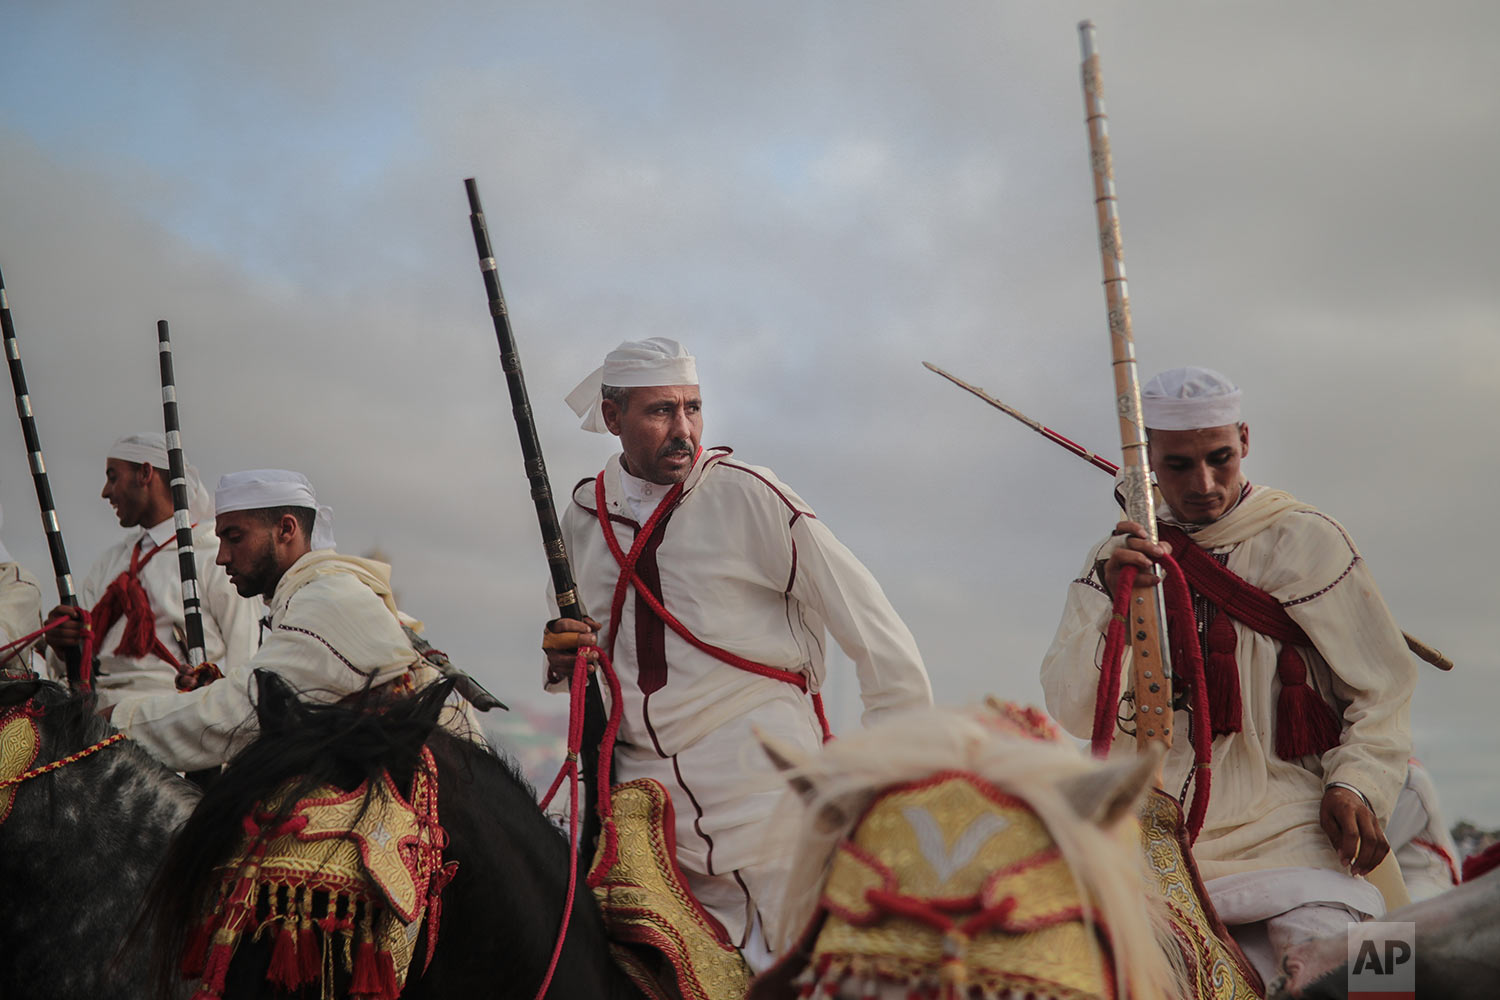 A troupe reacts after finishing a run during Tabourida, a traditional horse riding show also known as Fantasia, in the coastal town of El Jadida, Morocco, July 25, 2019. (AP Photo/Mosa'ab Elshamy)